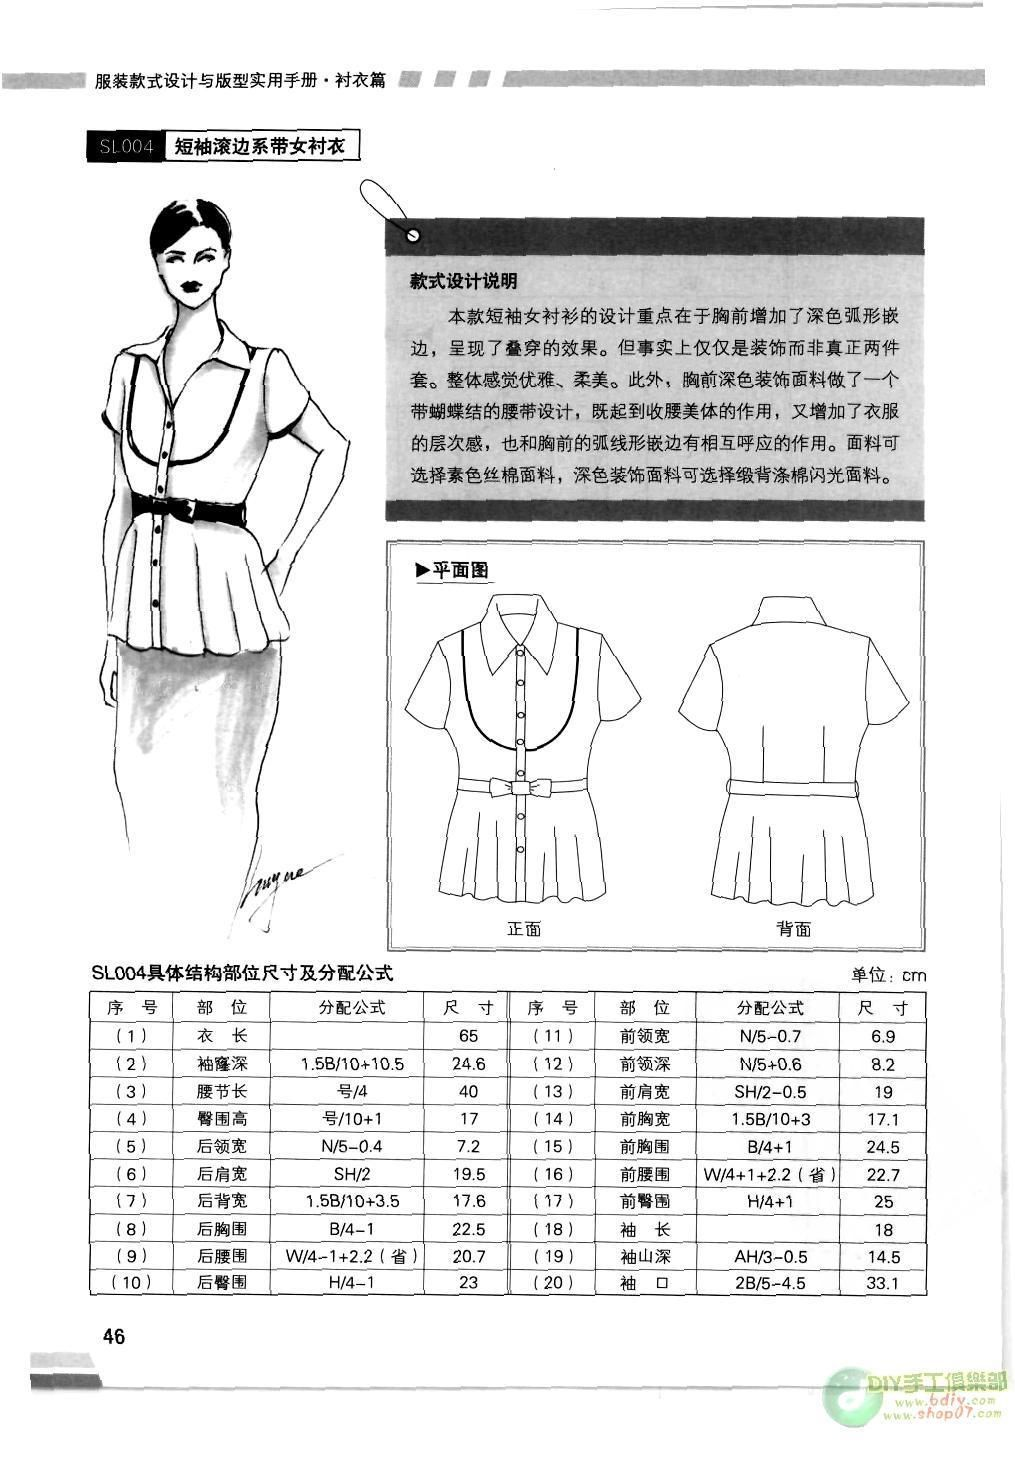 Female version of type design and shirt style china sew female version of type design and shirt style china jeuxipadfo Image collections